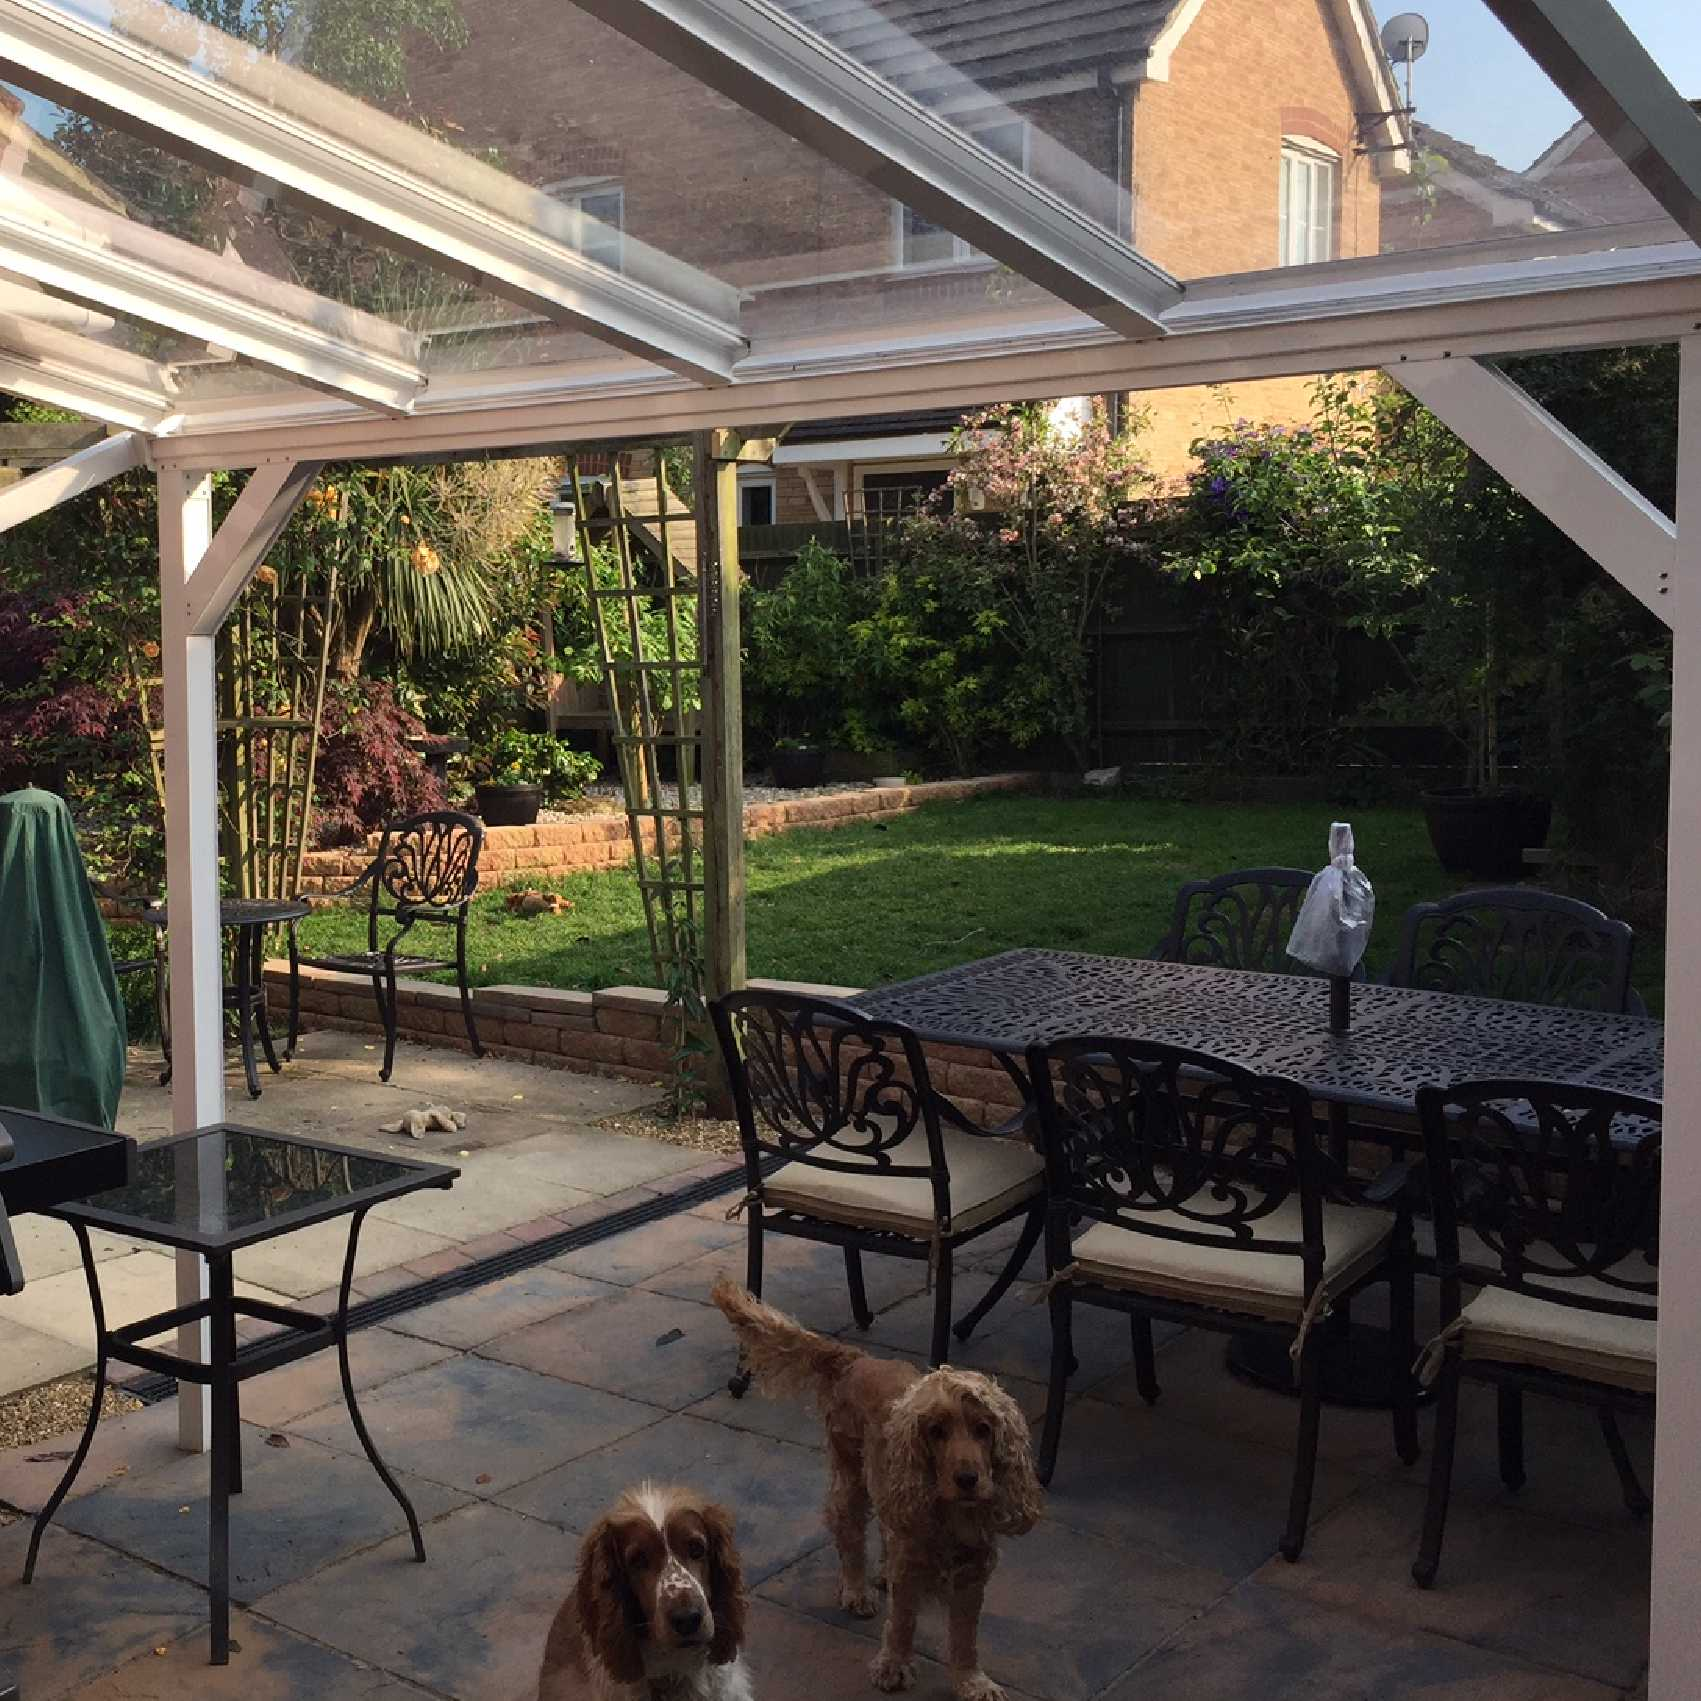 Affordable Omega Smart White Lean-To Canopy UNGLAZED for 6mm Glazing - 7.0m (W) x 2.0m (P), (4) Supporting Posts